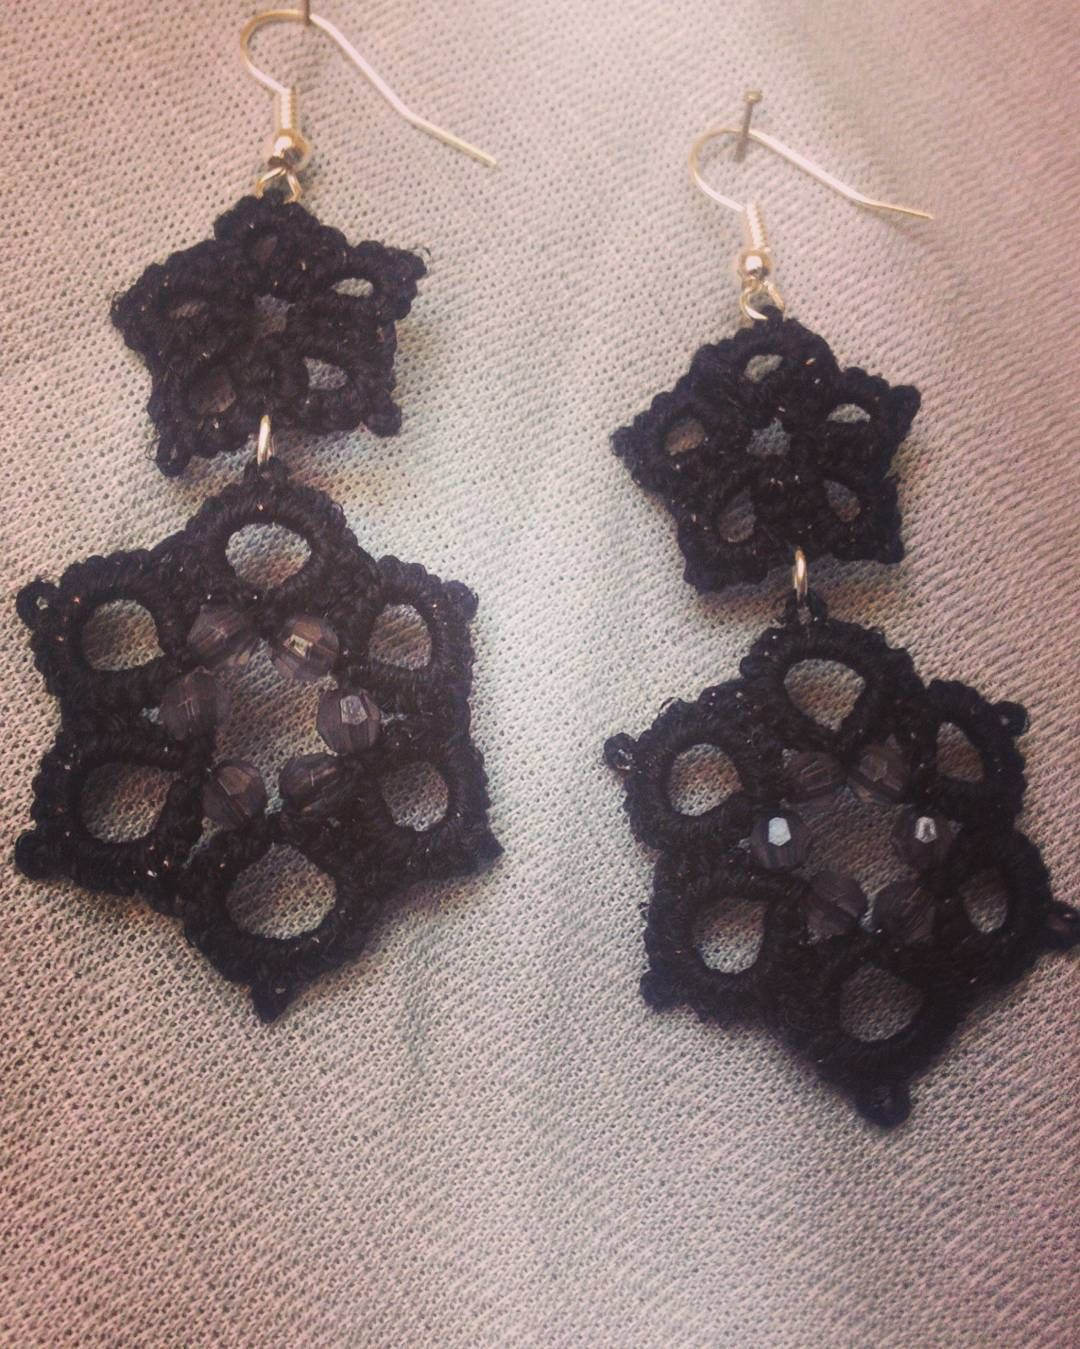 Long  black earrings #tatting  #earrings  #black  #long by danguba_handmade